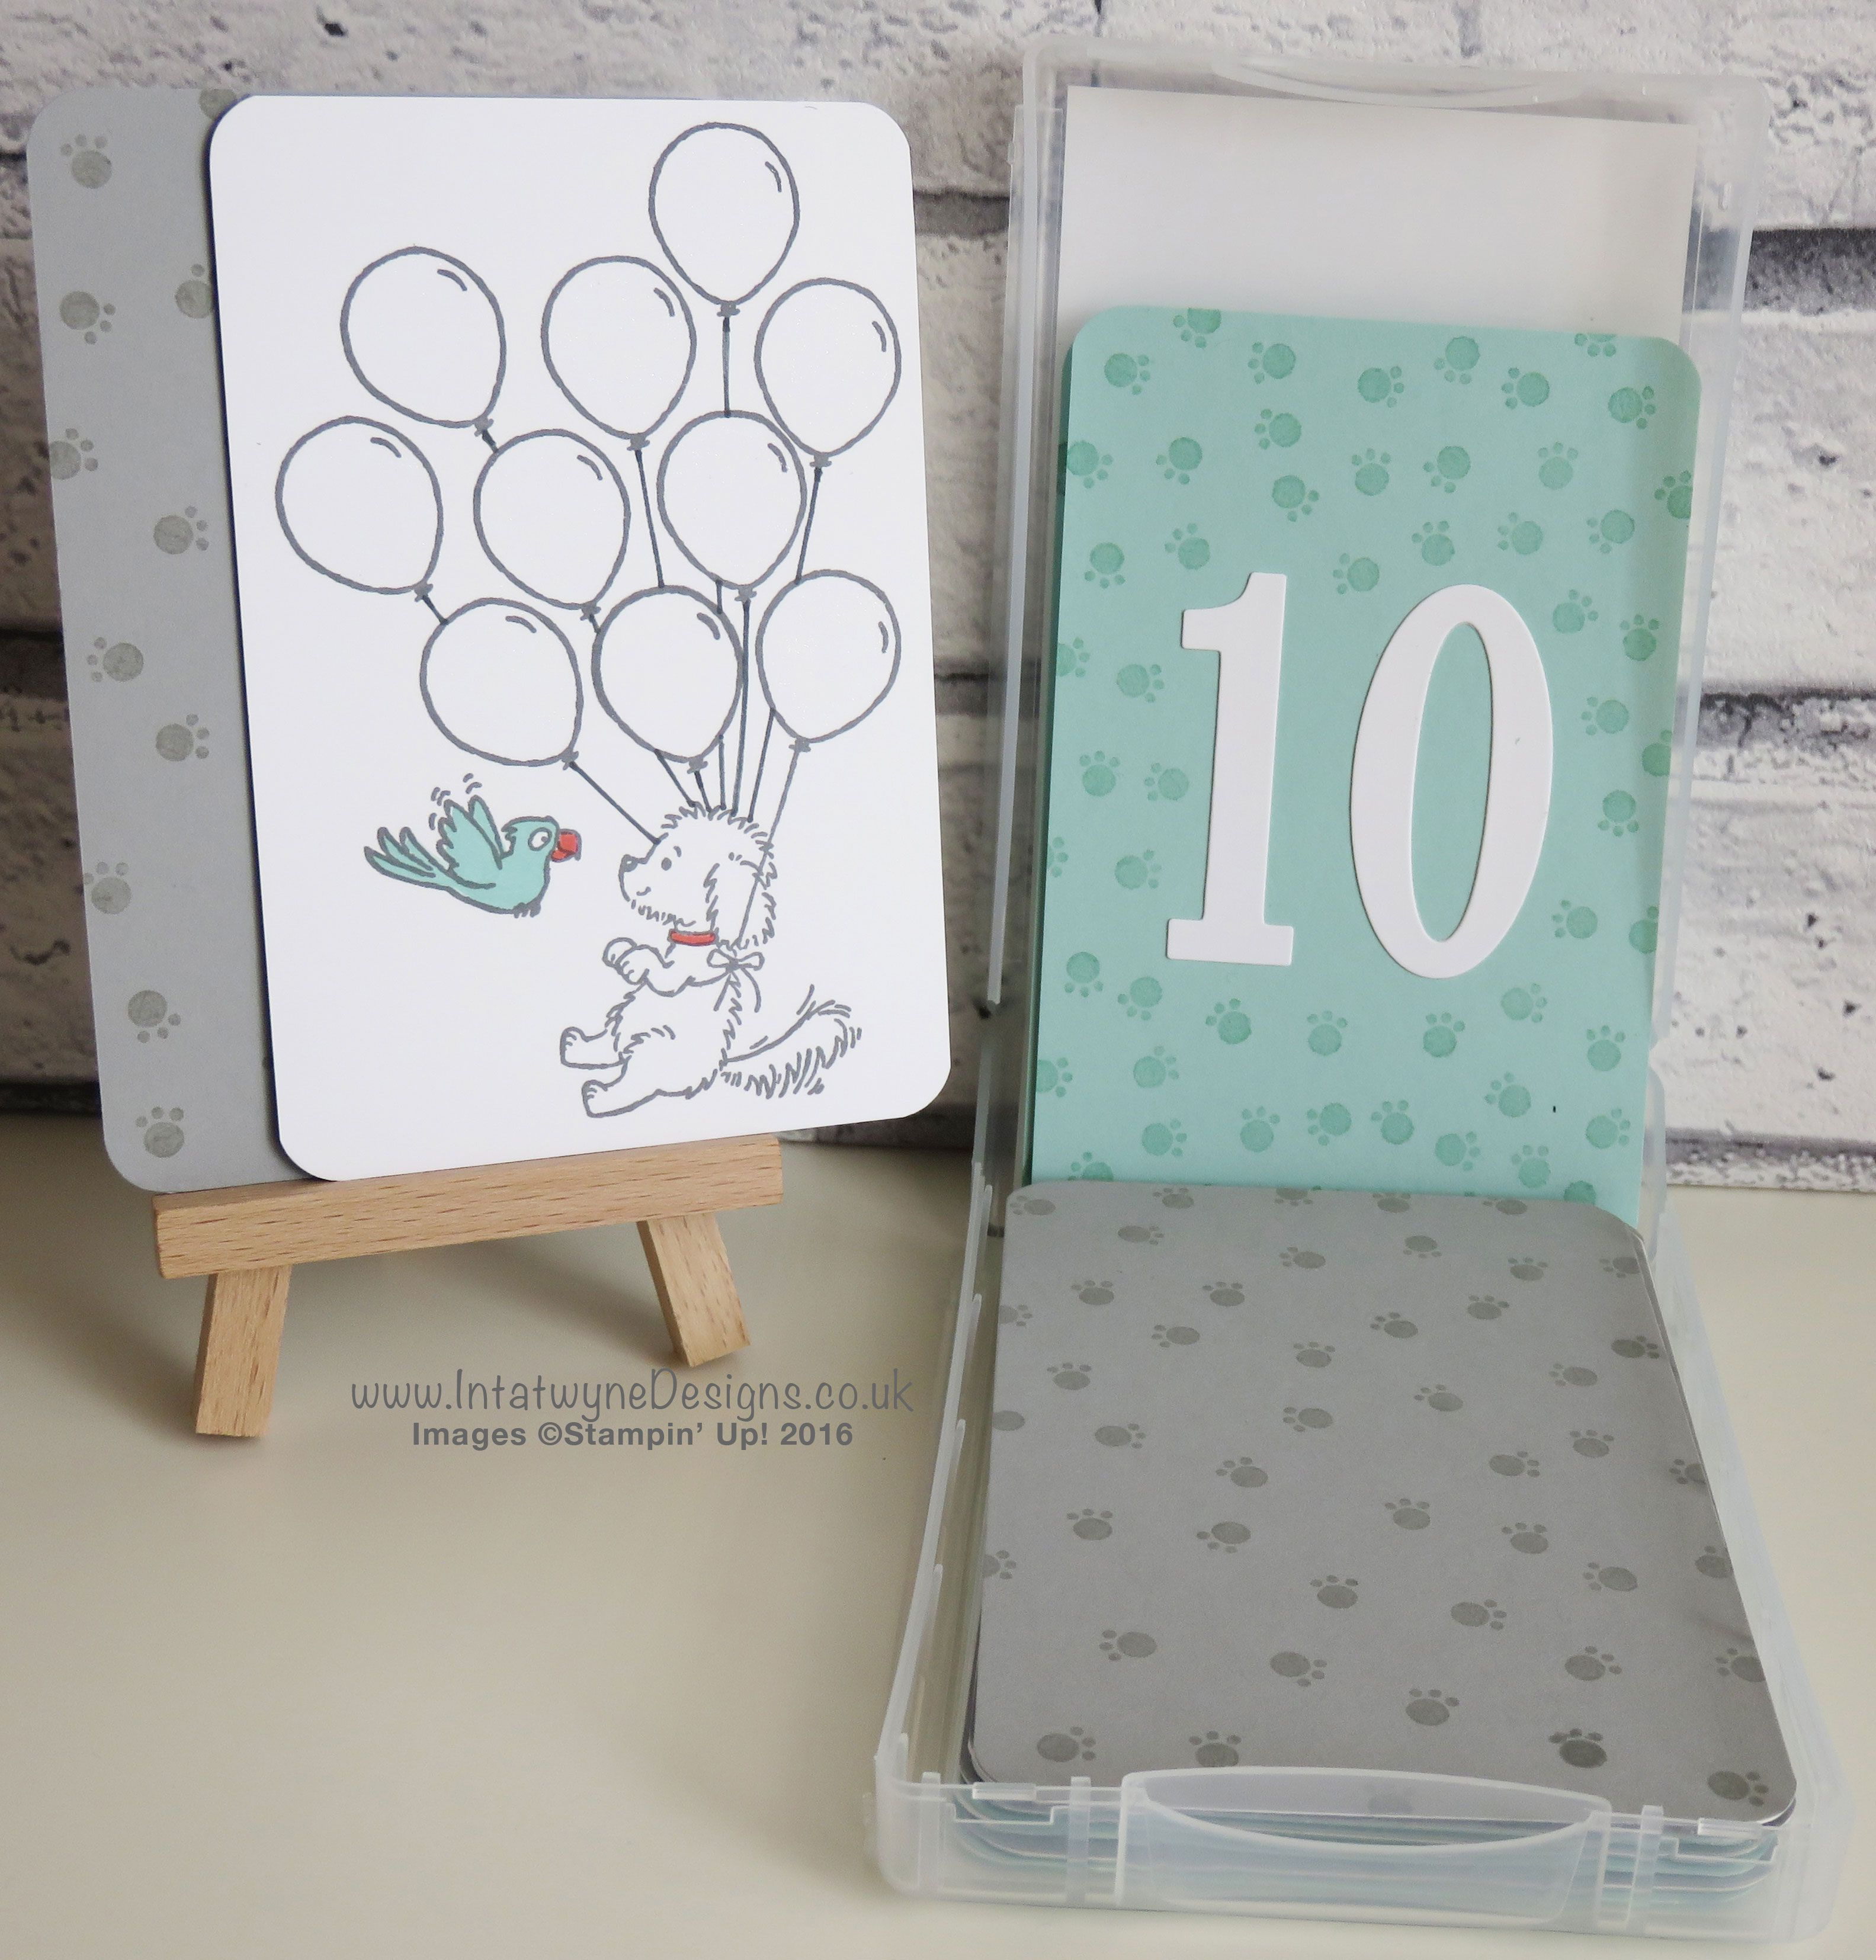 my creation for the Pootlers Blog Hop - using Bella and friends, number of years bundle and the foxy friends stamps by Stampin' Up! All available from my 24/7 online shop. - http://www2.stampinup.com/ECWeb/default.aspx?dbwsdemoid=5017521